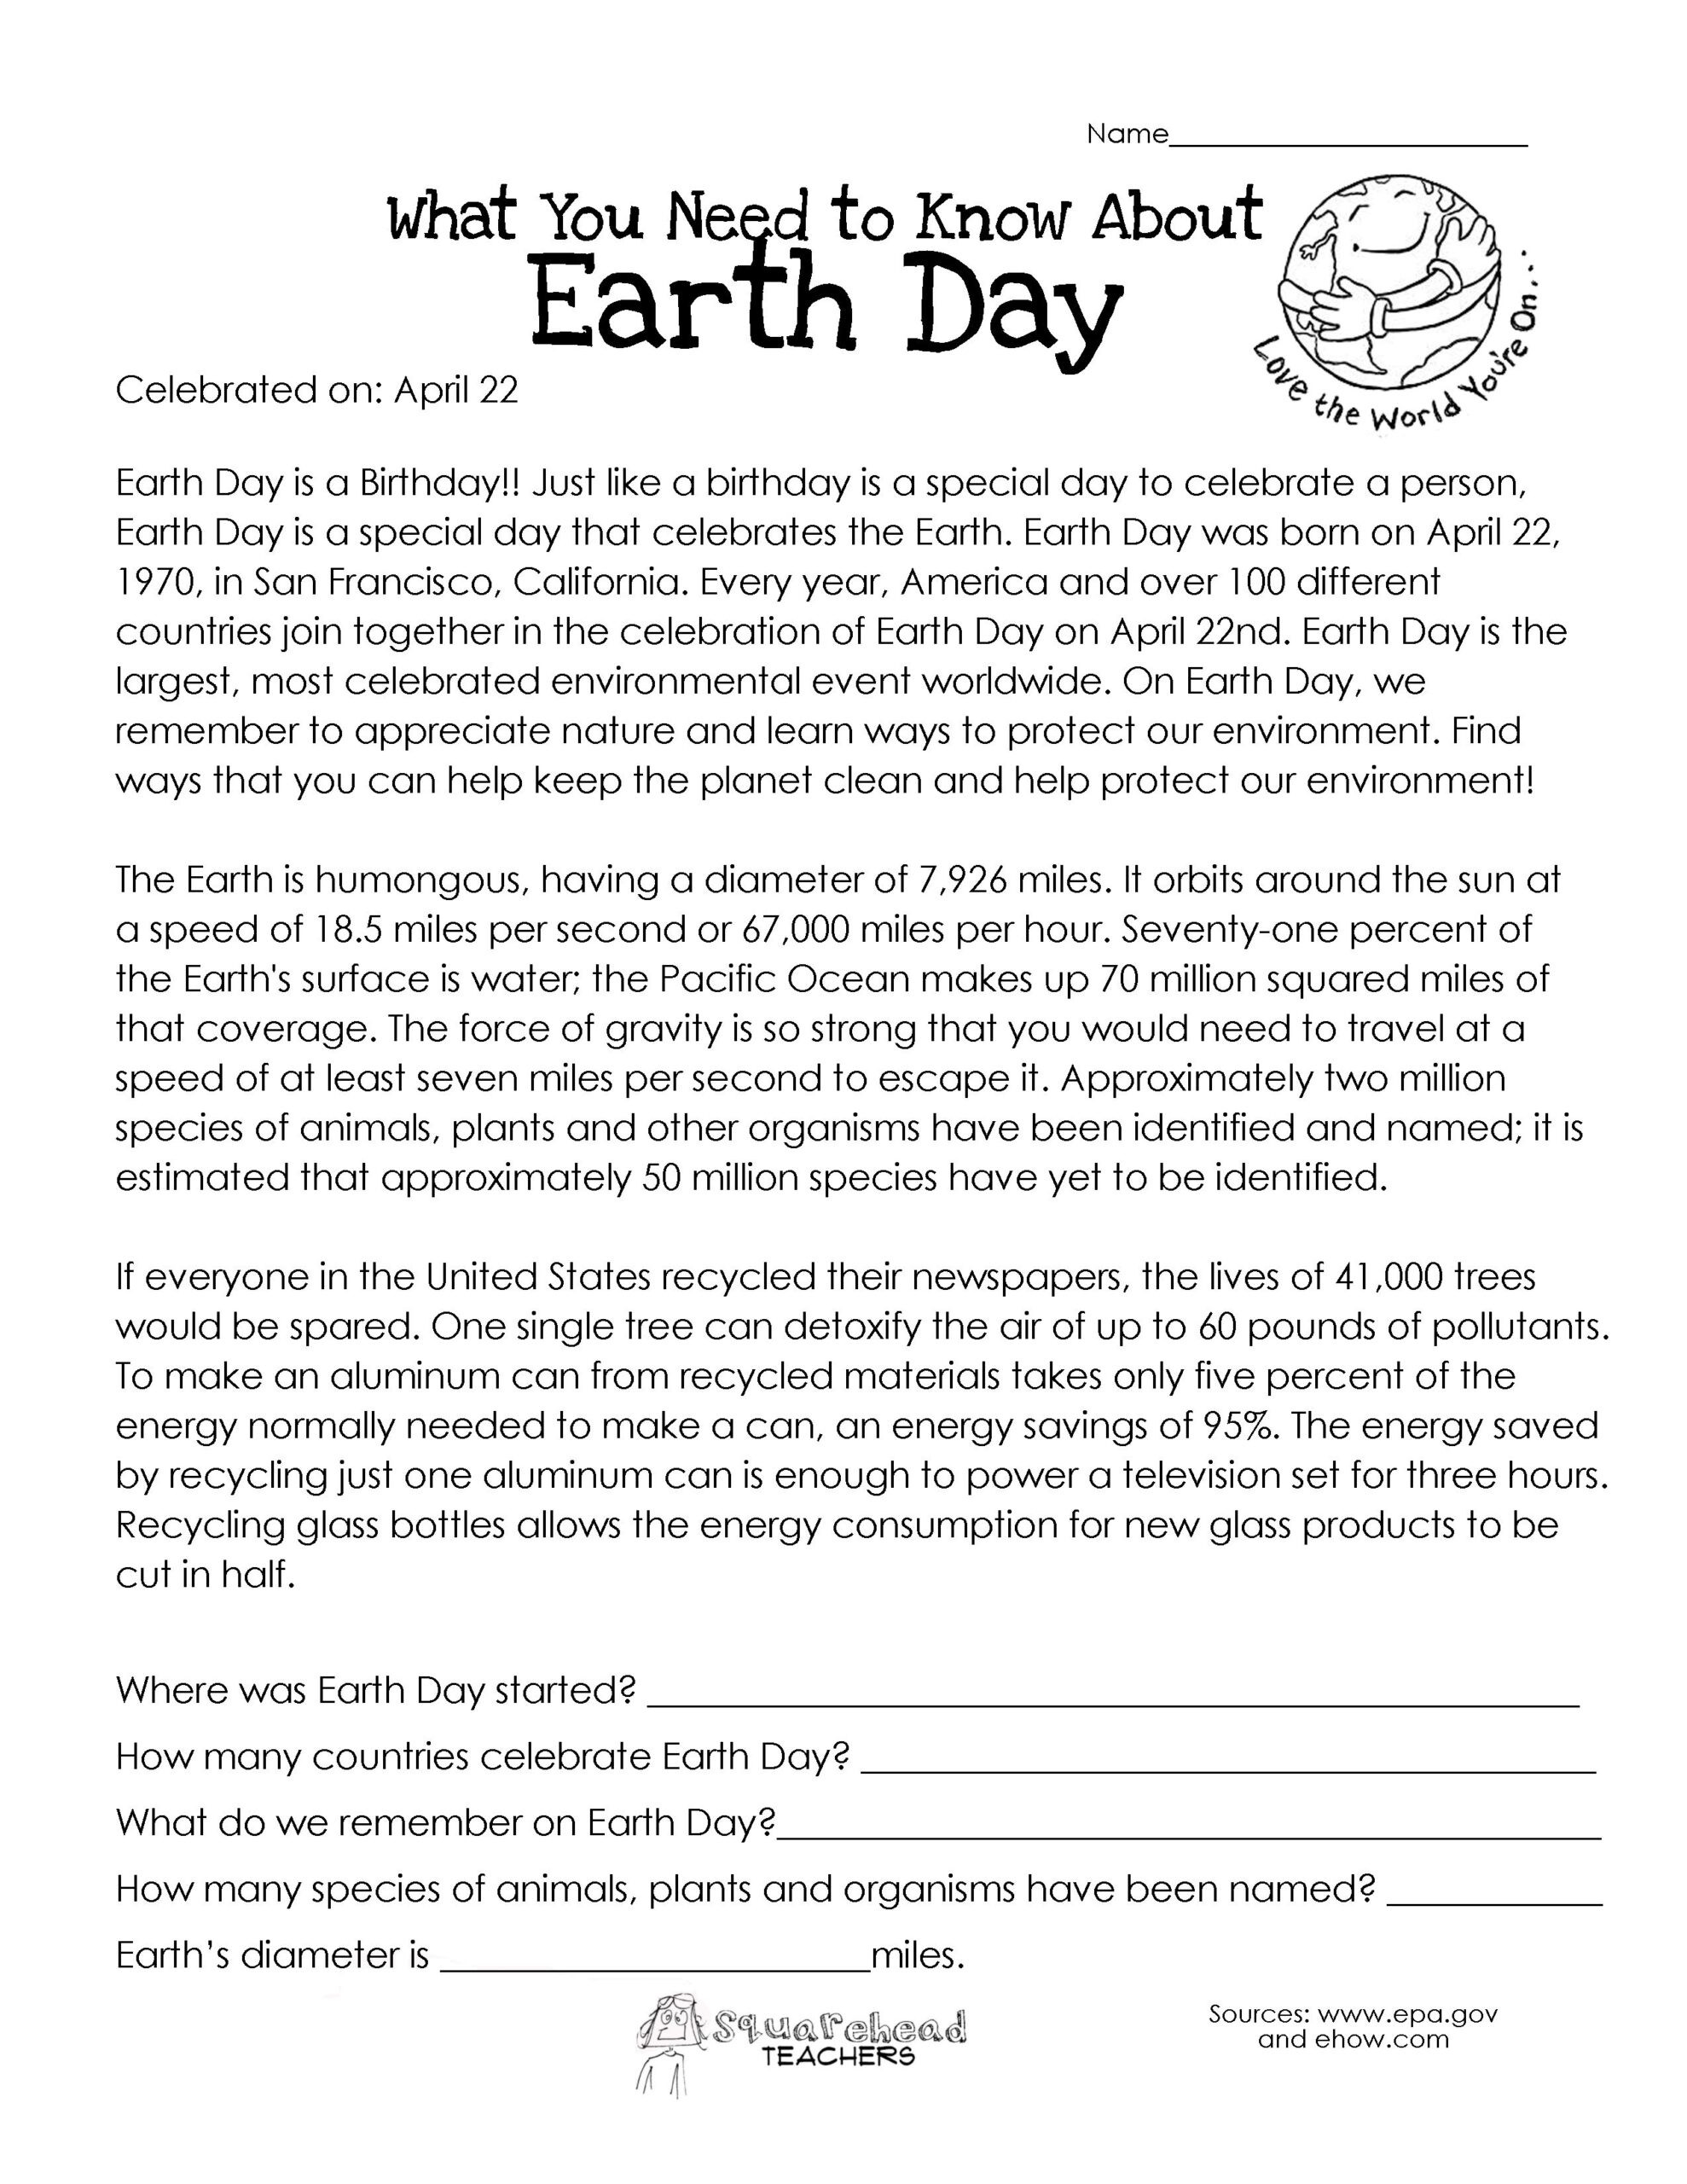 Earth Day Math Worksheets You Need to Know About Earth Worksheets Middle School